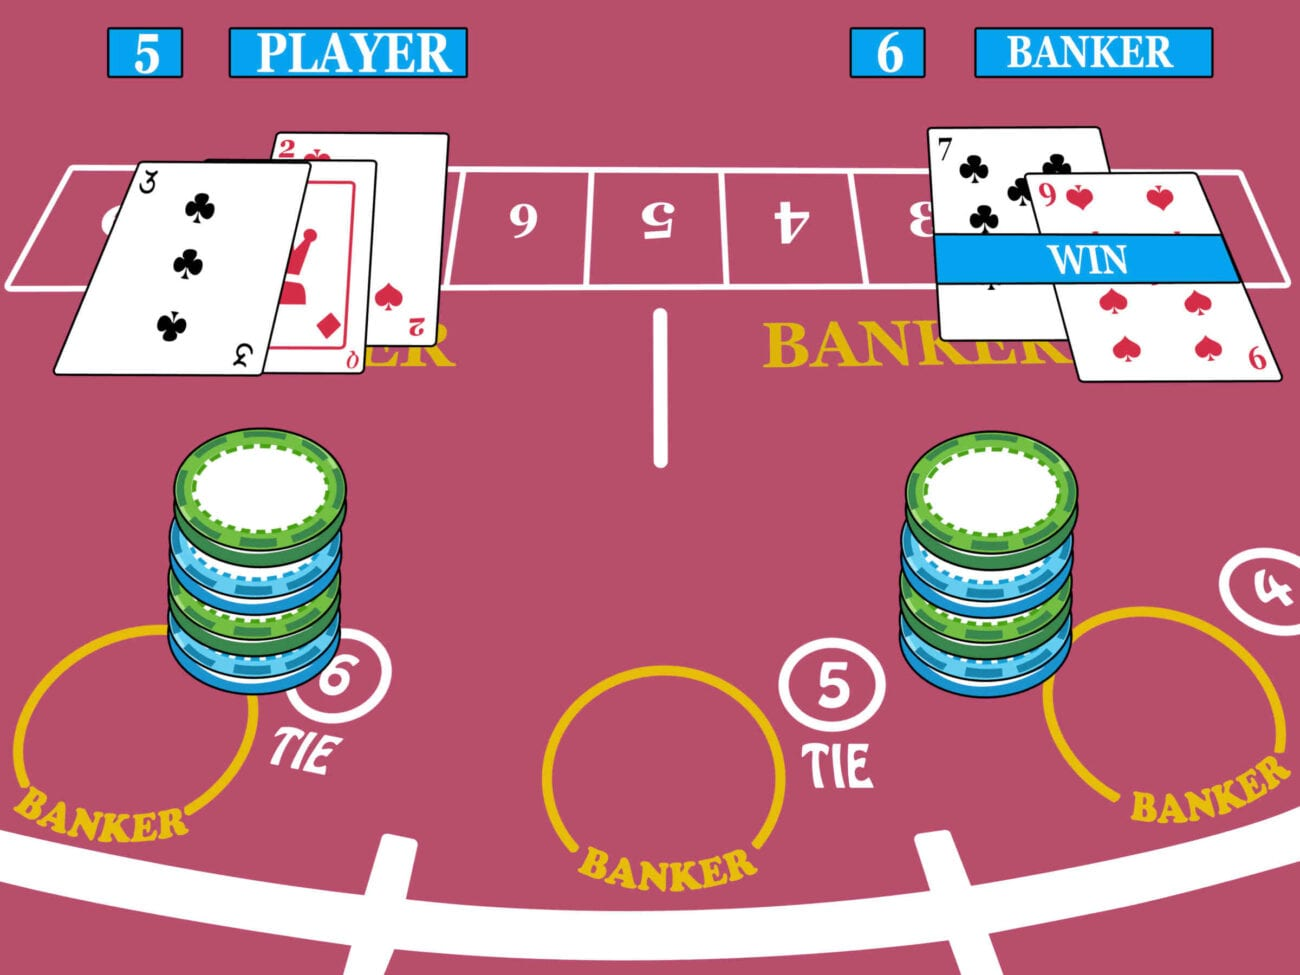 Baccarat is one of the most popular games to learn, but it can be difficult to master. Let us show you how you can win big by playing today!